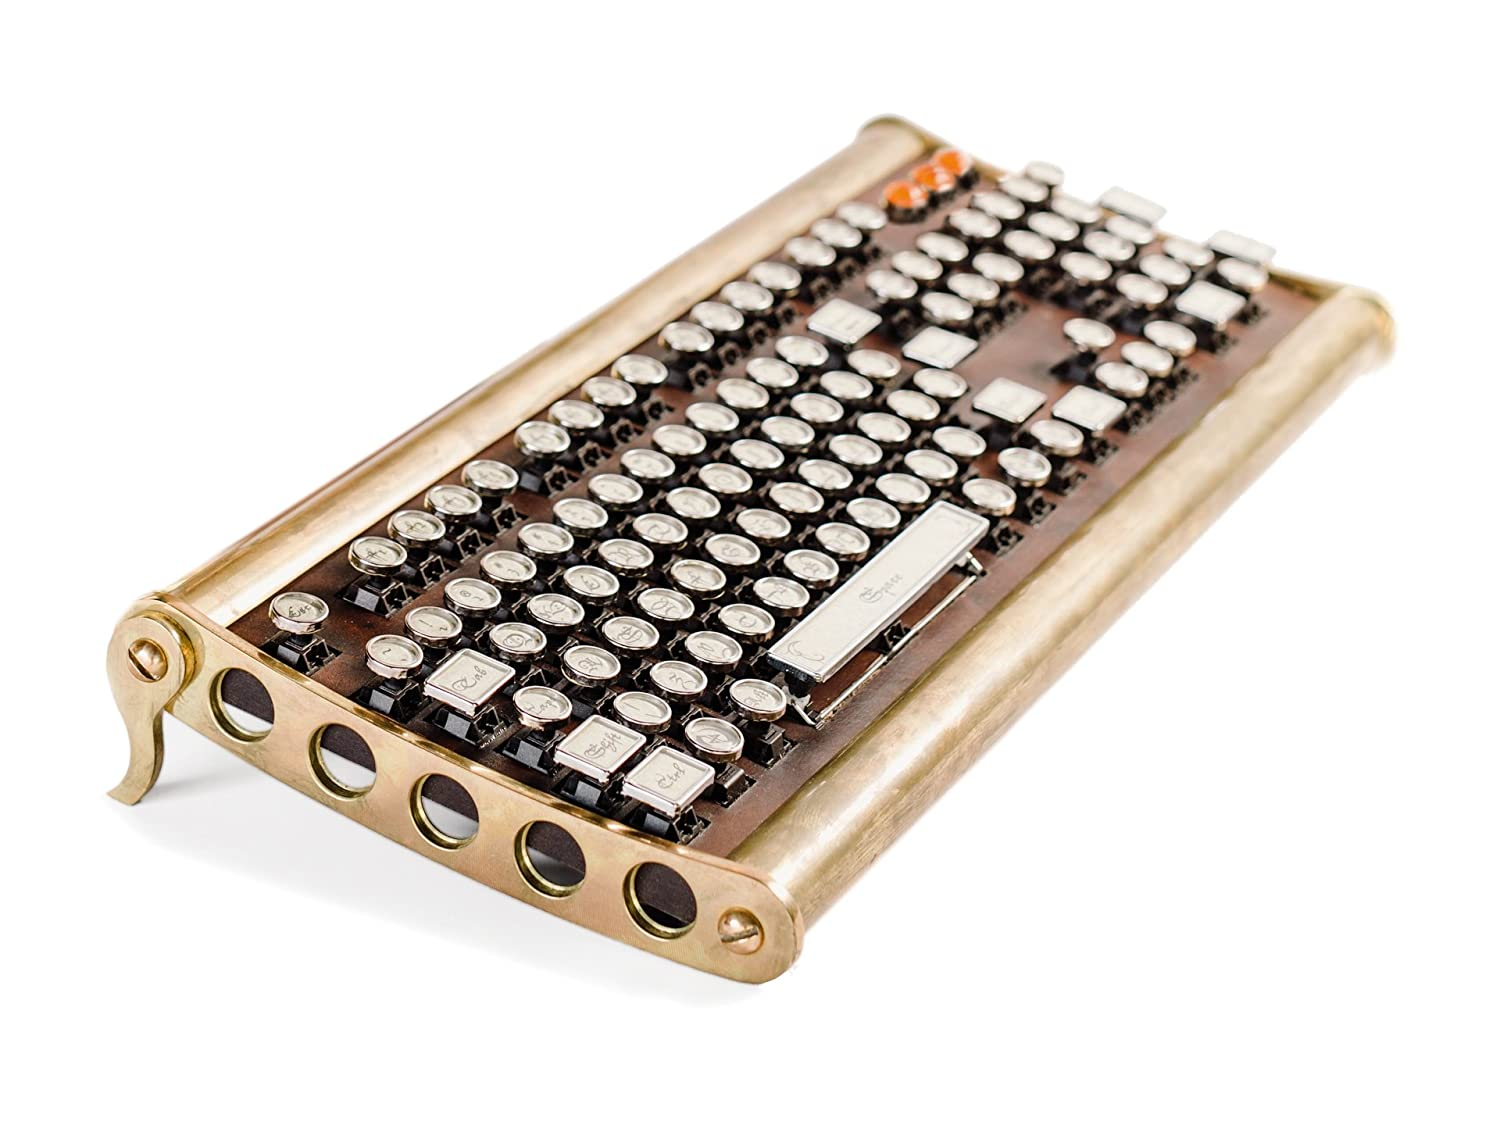 a brass-constructed keyboard made to mimic an old-school typewriter.